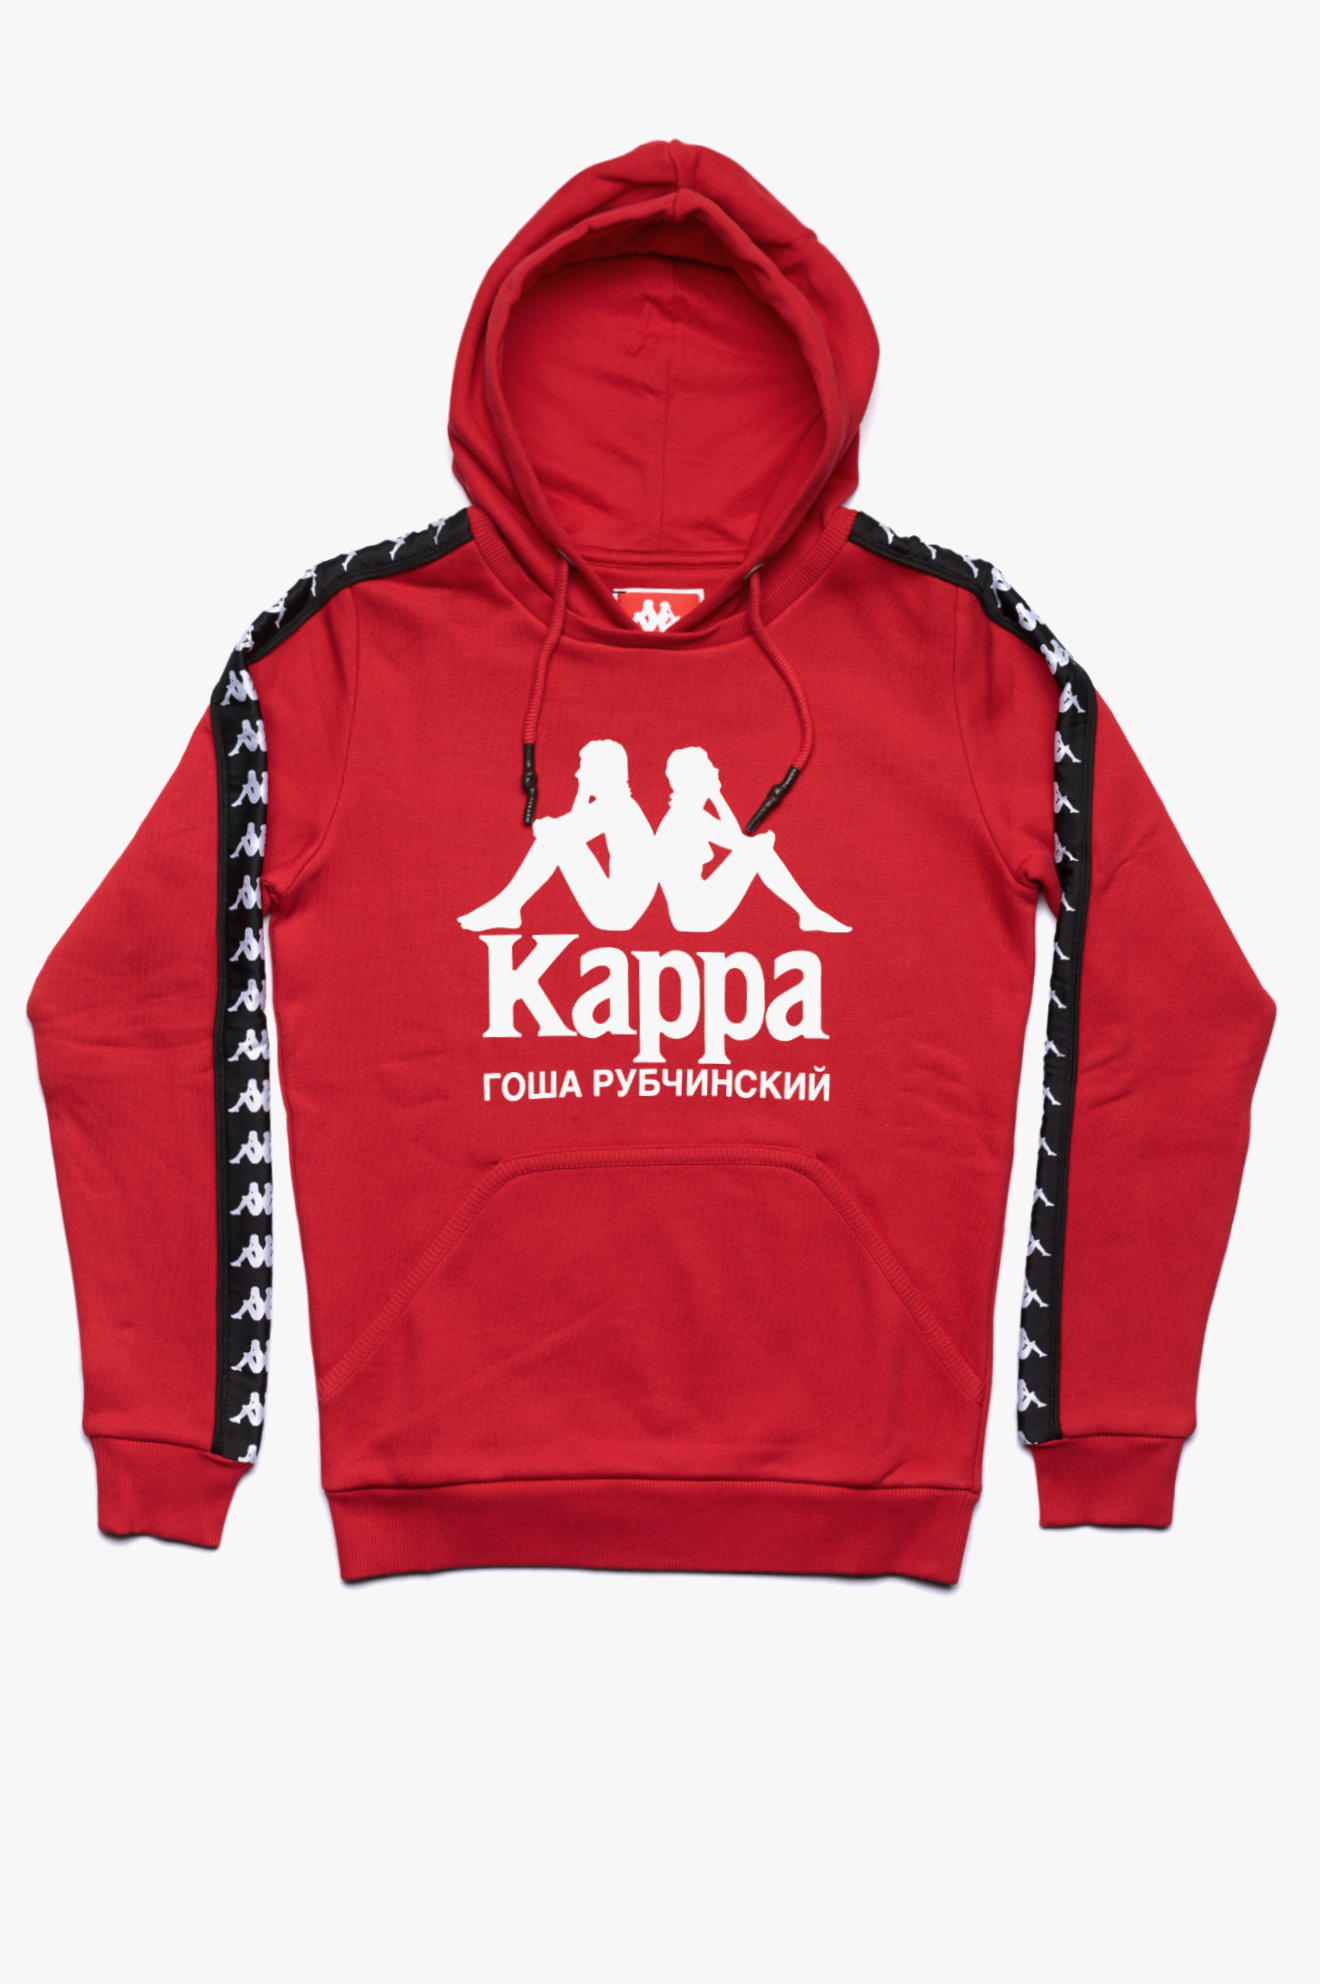 Kappa Hooded Sweatshirt Red